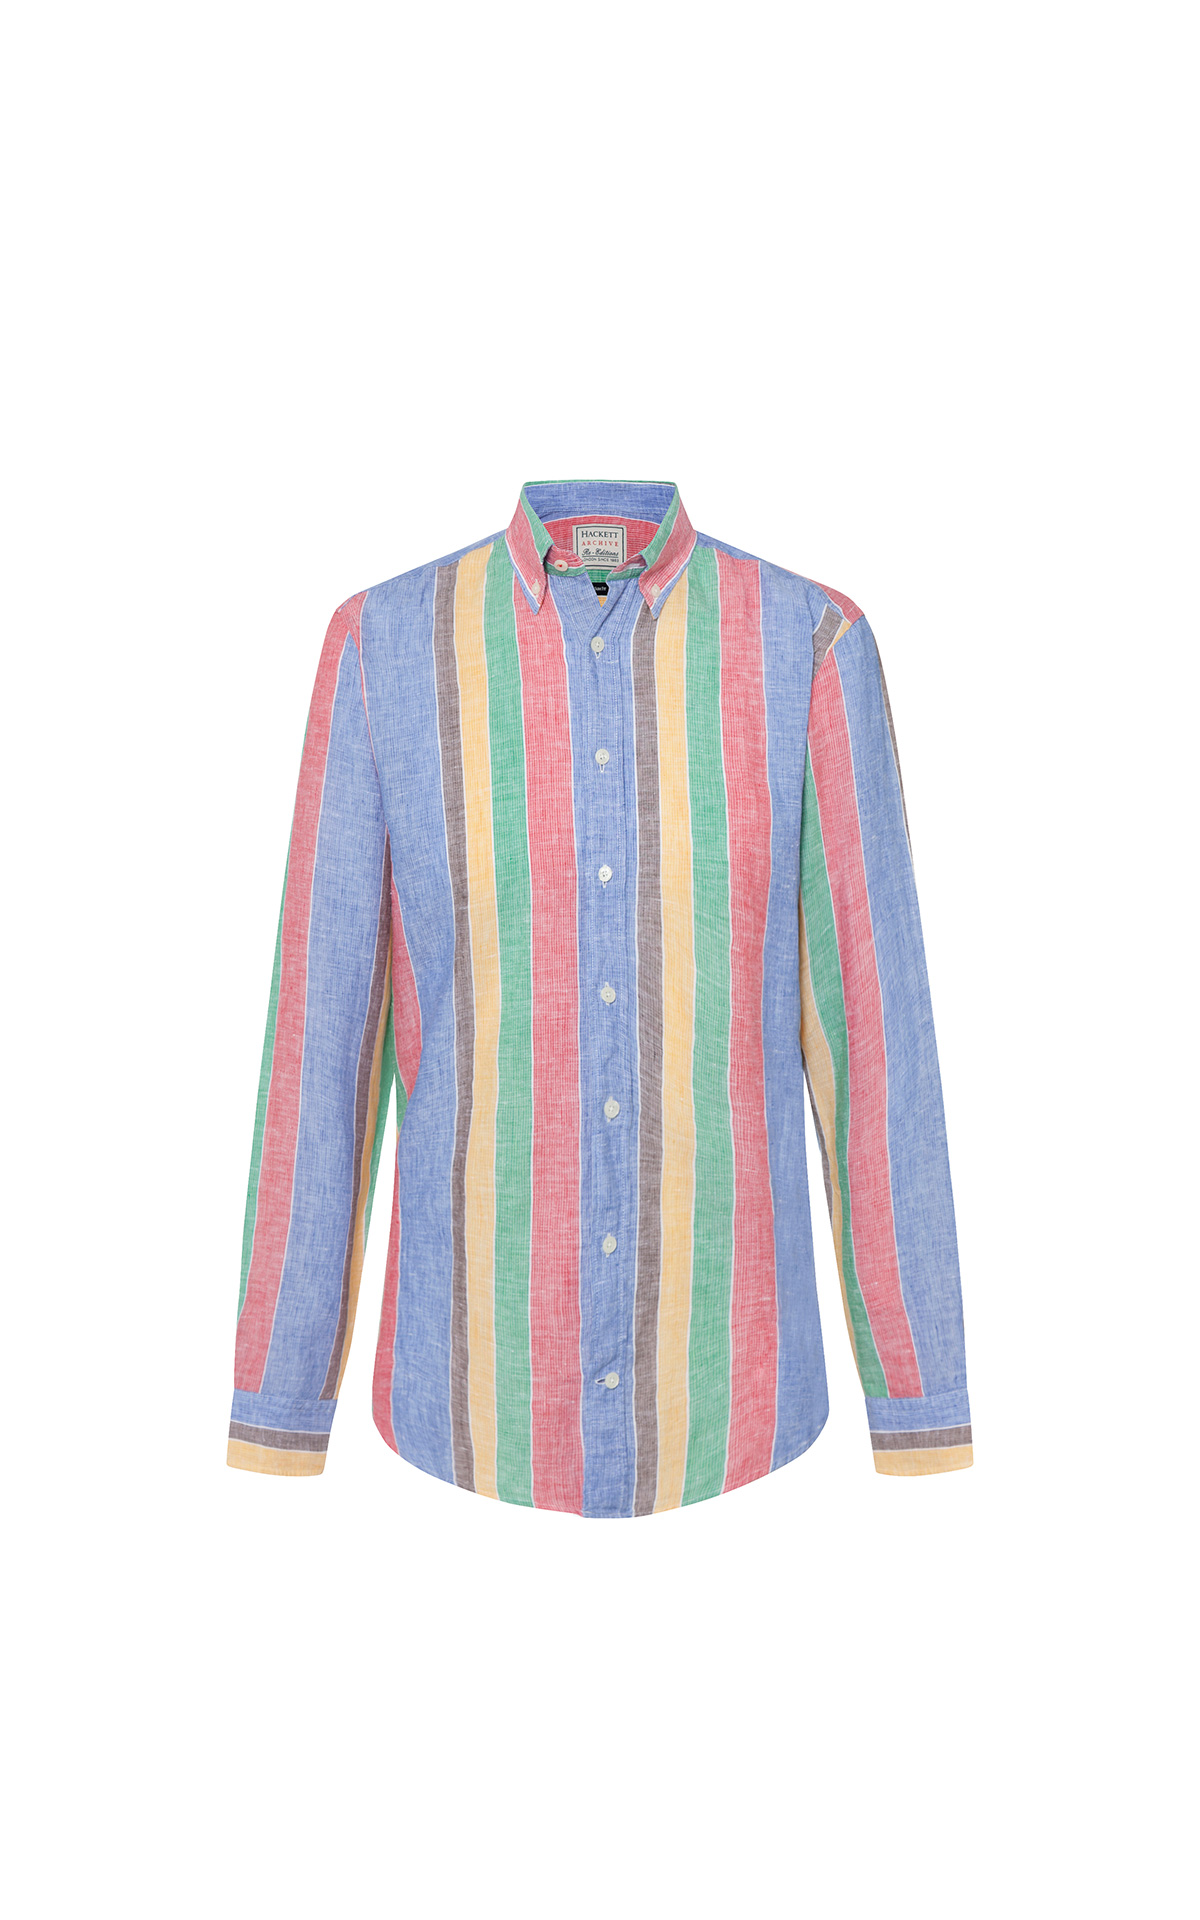 Hackett Archive Multi Coloured Linen Shirt at The Bicester Village Shopping Collection